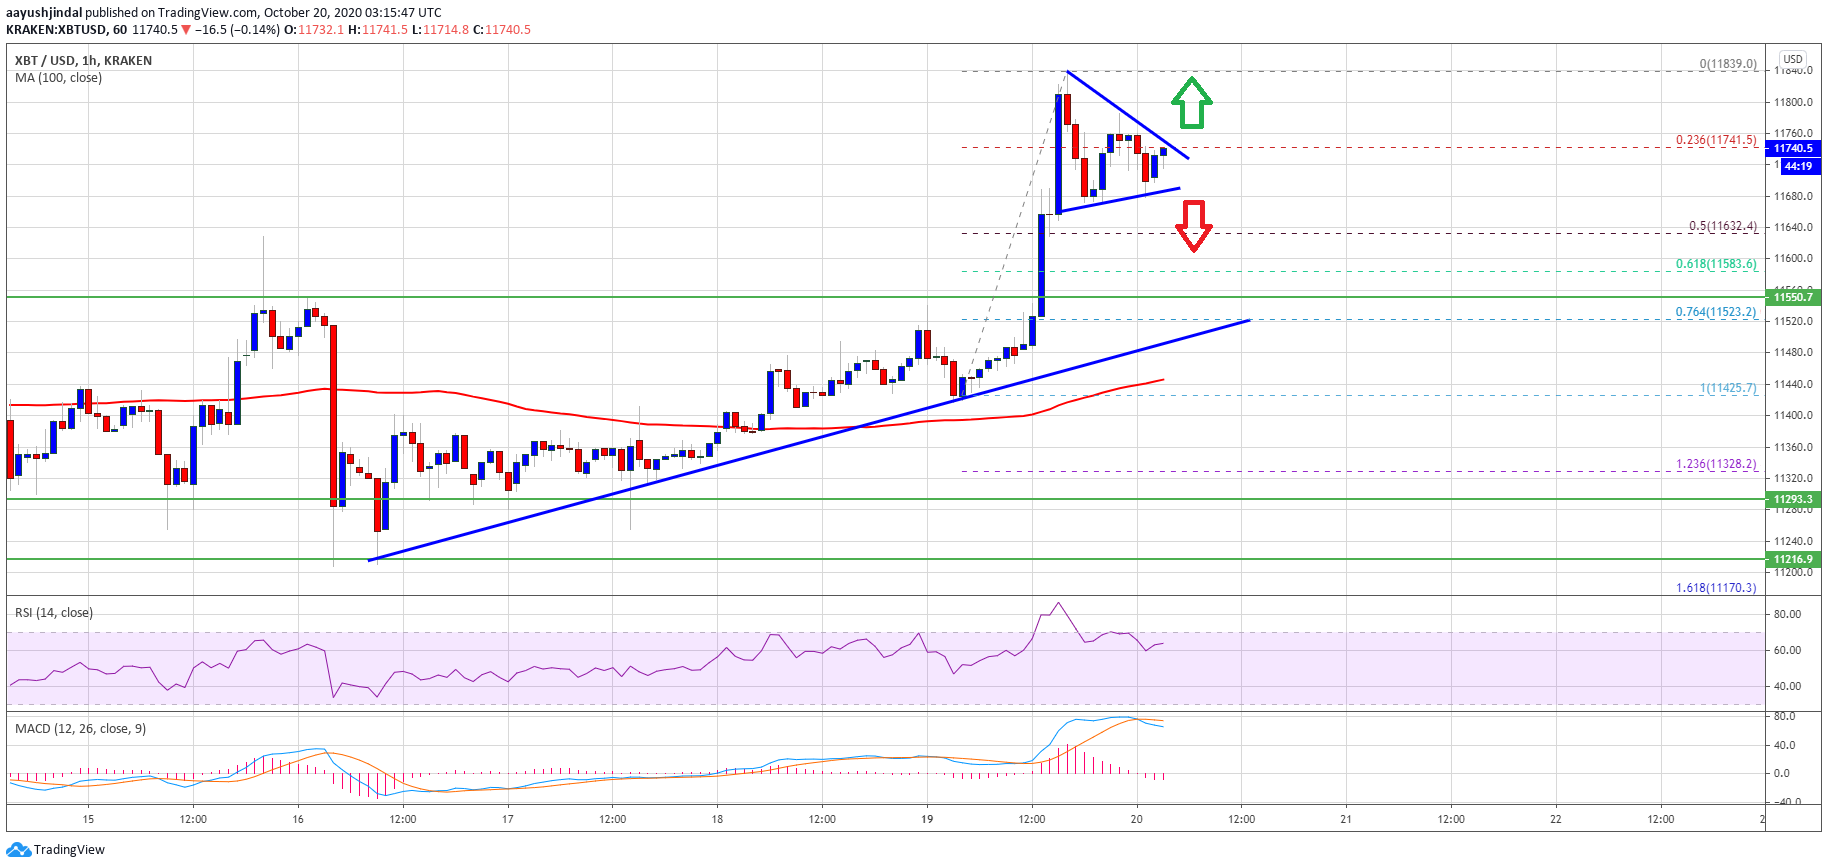 TA: Bitcoin Bulls Back In Driver's Seat, More Upsides Above $12K Likely